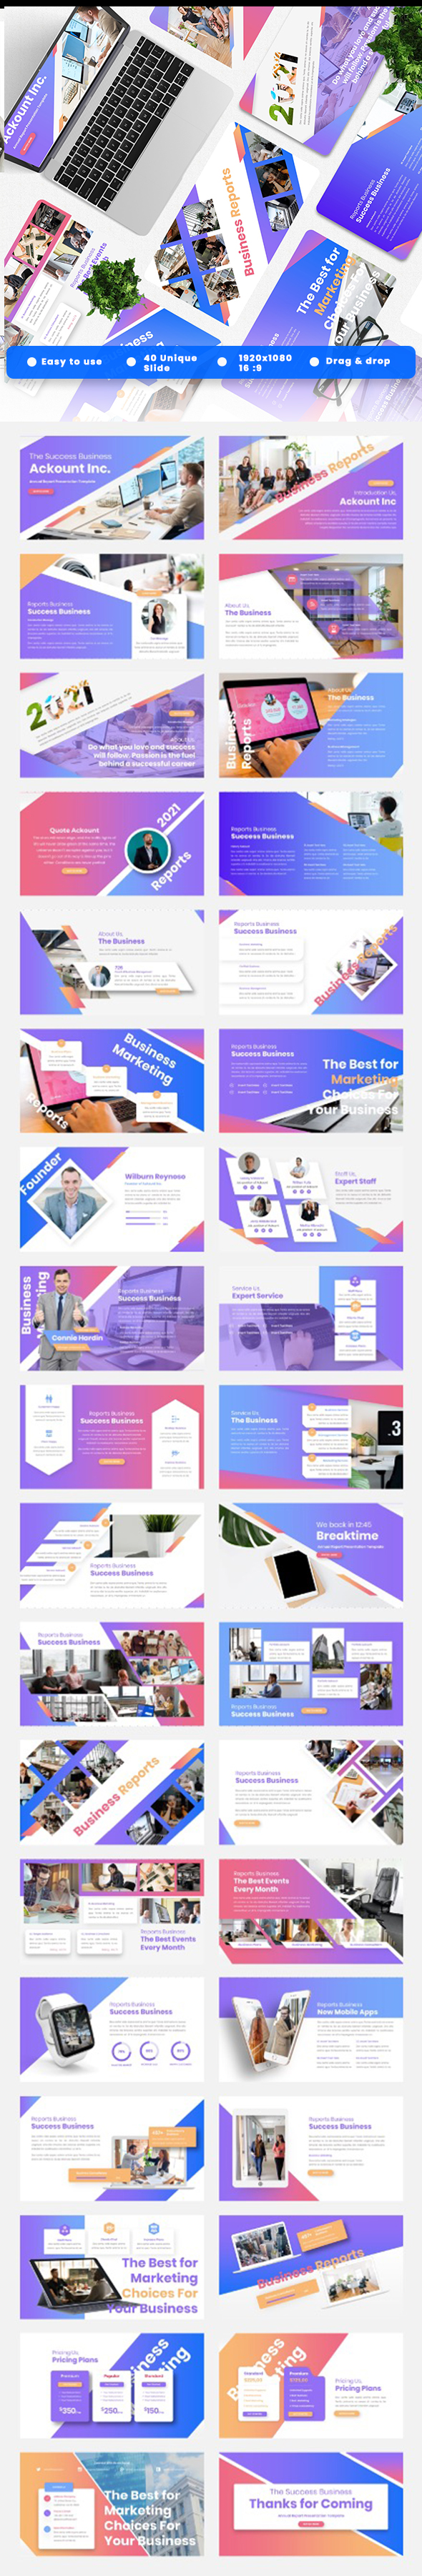 Ackount - Annual Report Powerpoint Template